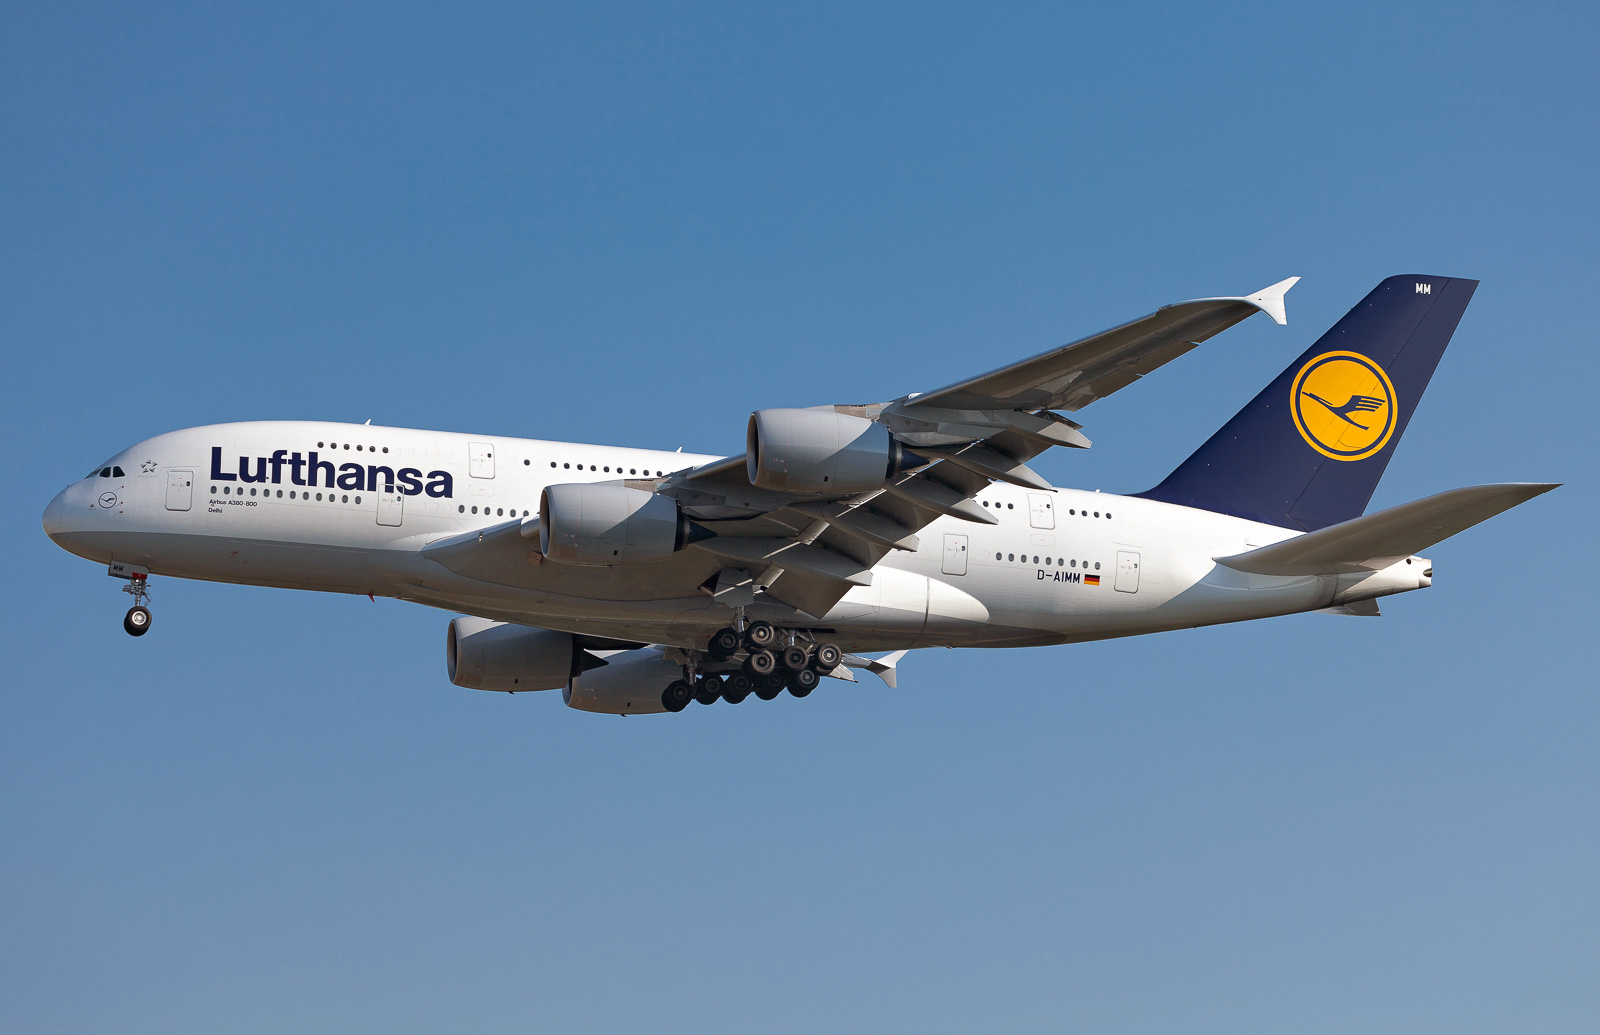 airbus a380 800 lufthansa photos and description of the plane. Black Bedroom Furniture Sets. Home Design Ideas